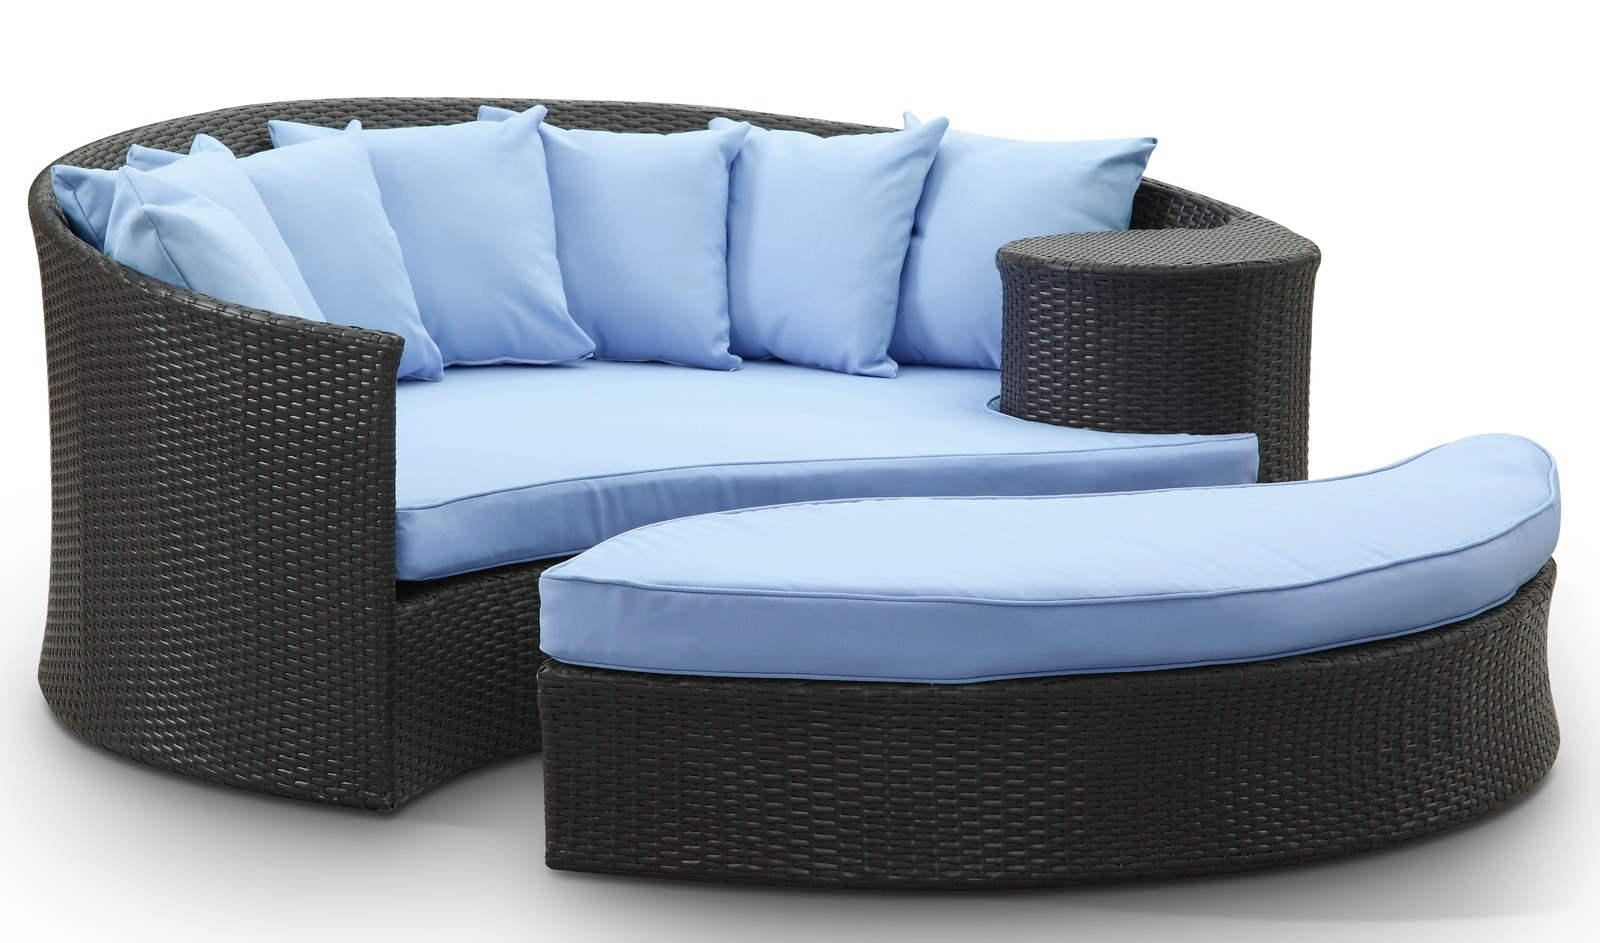 Taiji Espresso Outdoor Rattan Daybed W Ottoman & Light